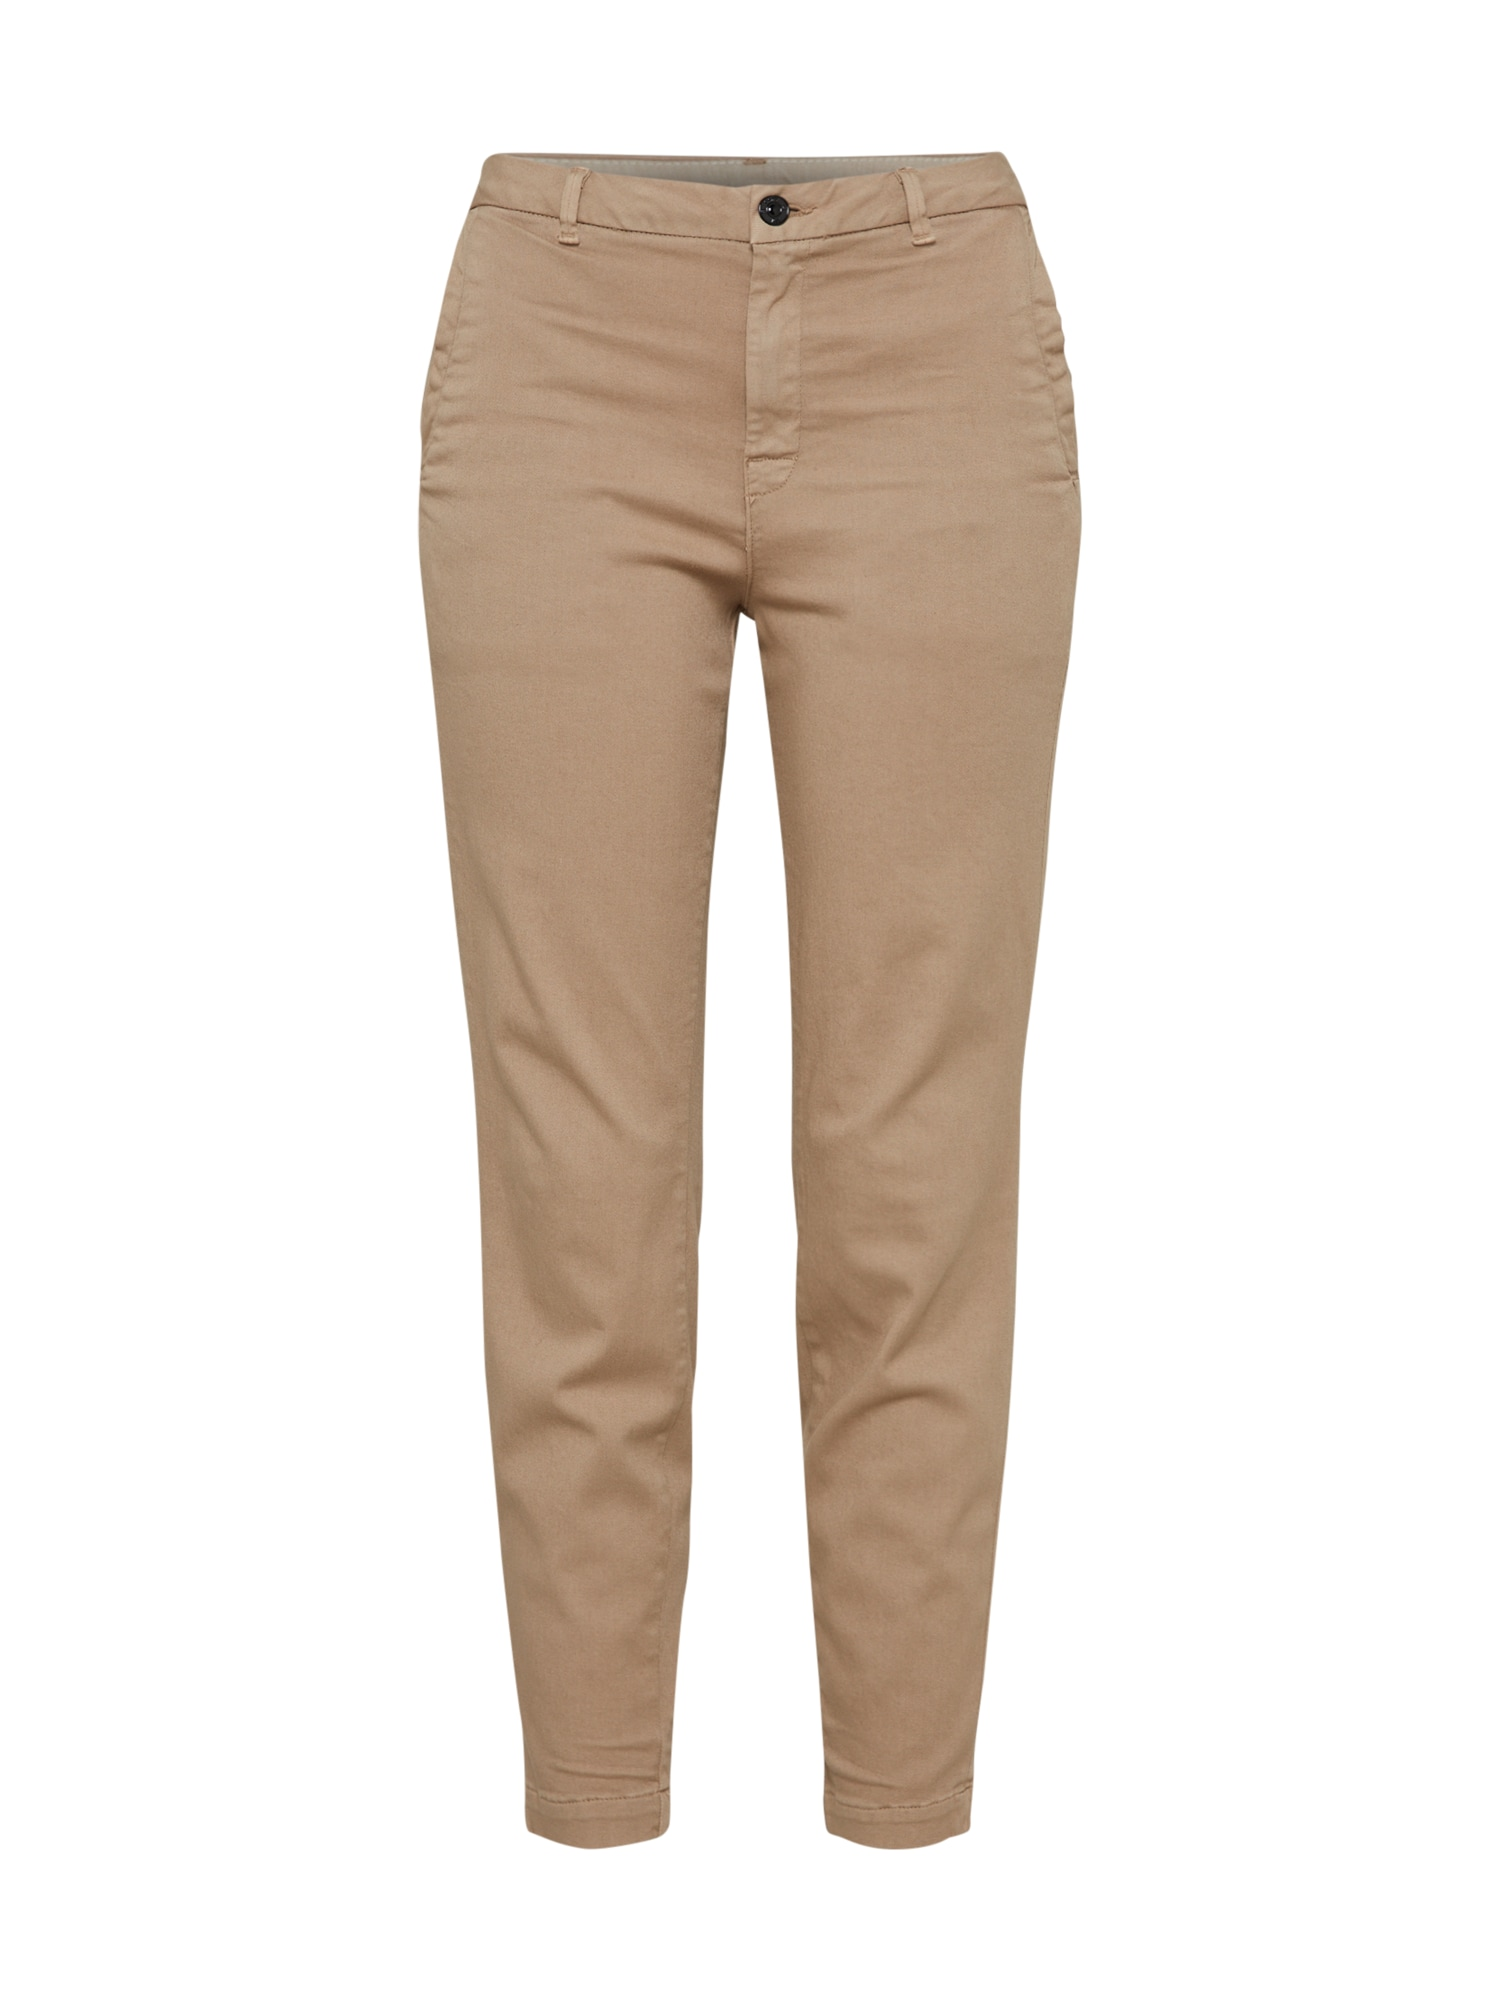 G-STAR RAW Dames Chino Bronson beige